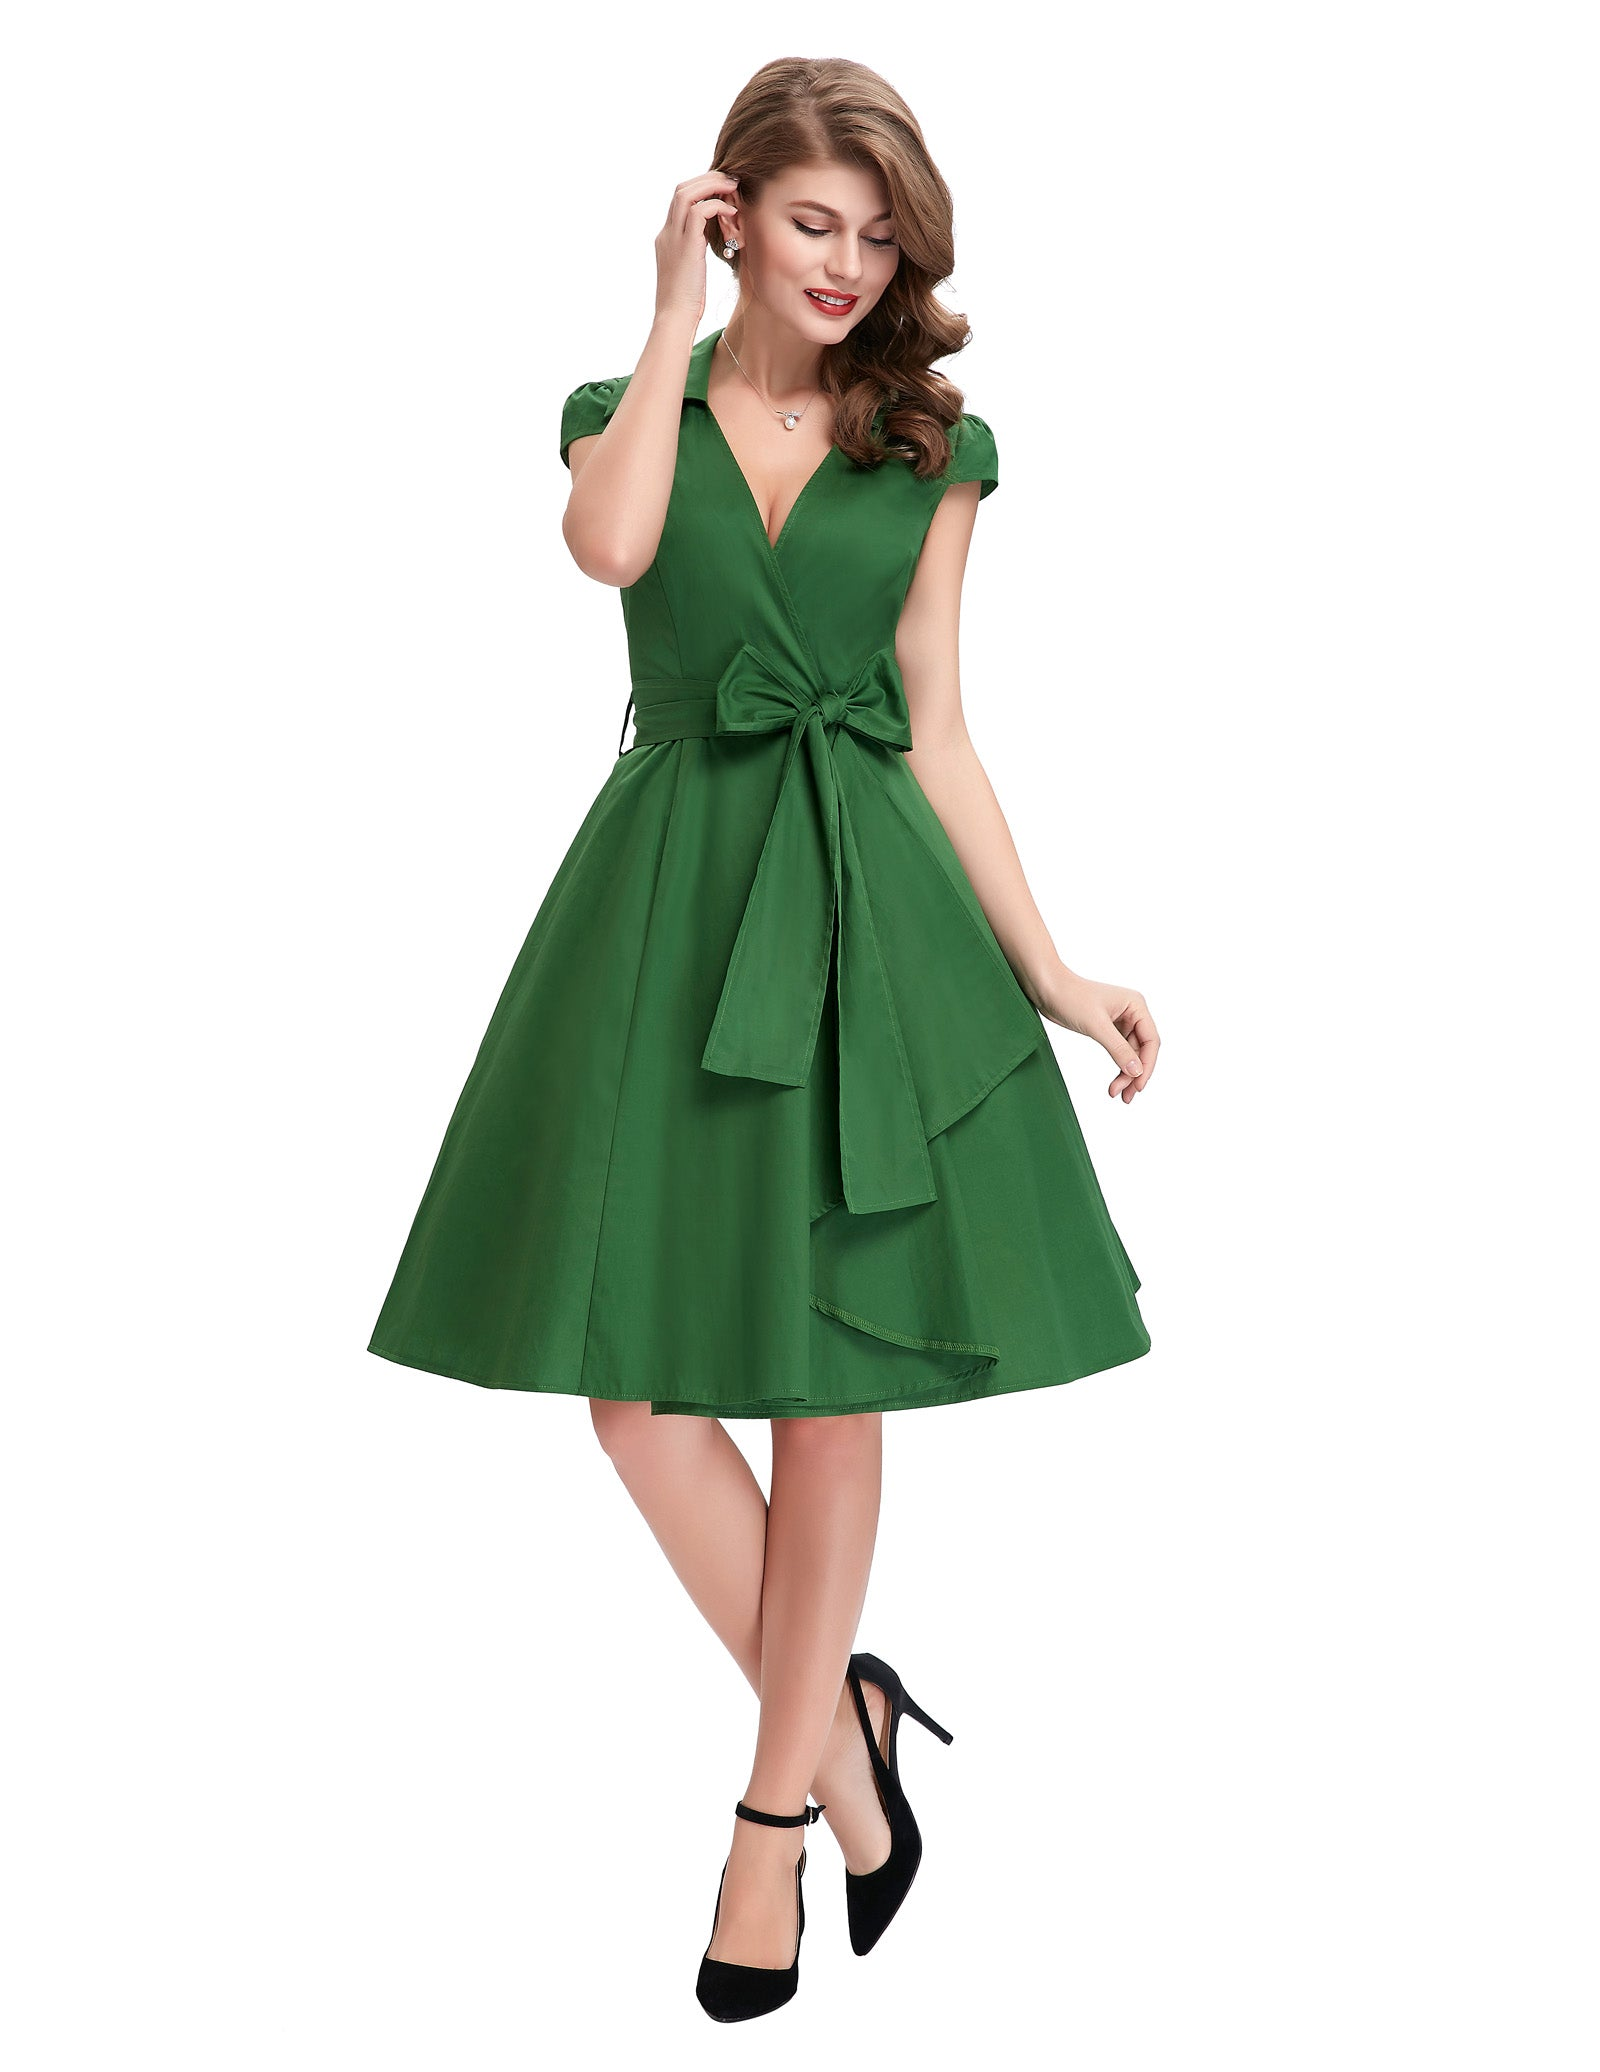 GRACE KARIN Solid Color Cap Sleeve V-Neck Party Picnic Dress with Belt